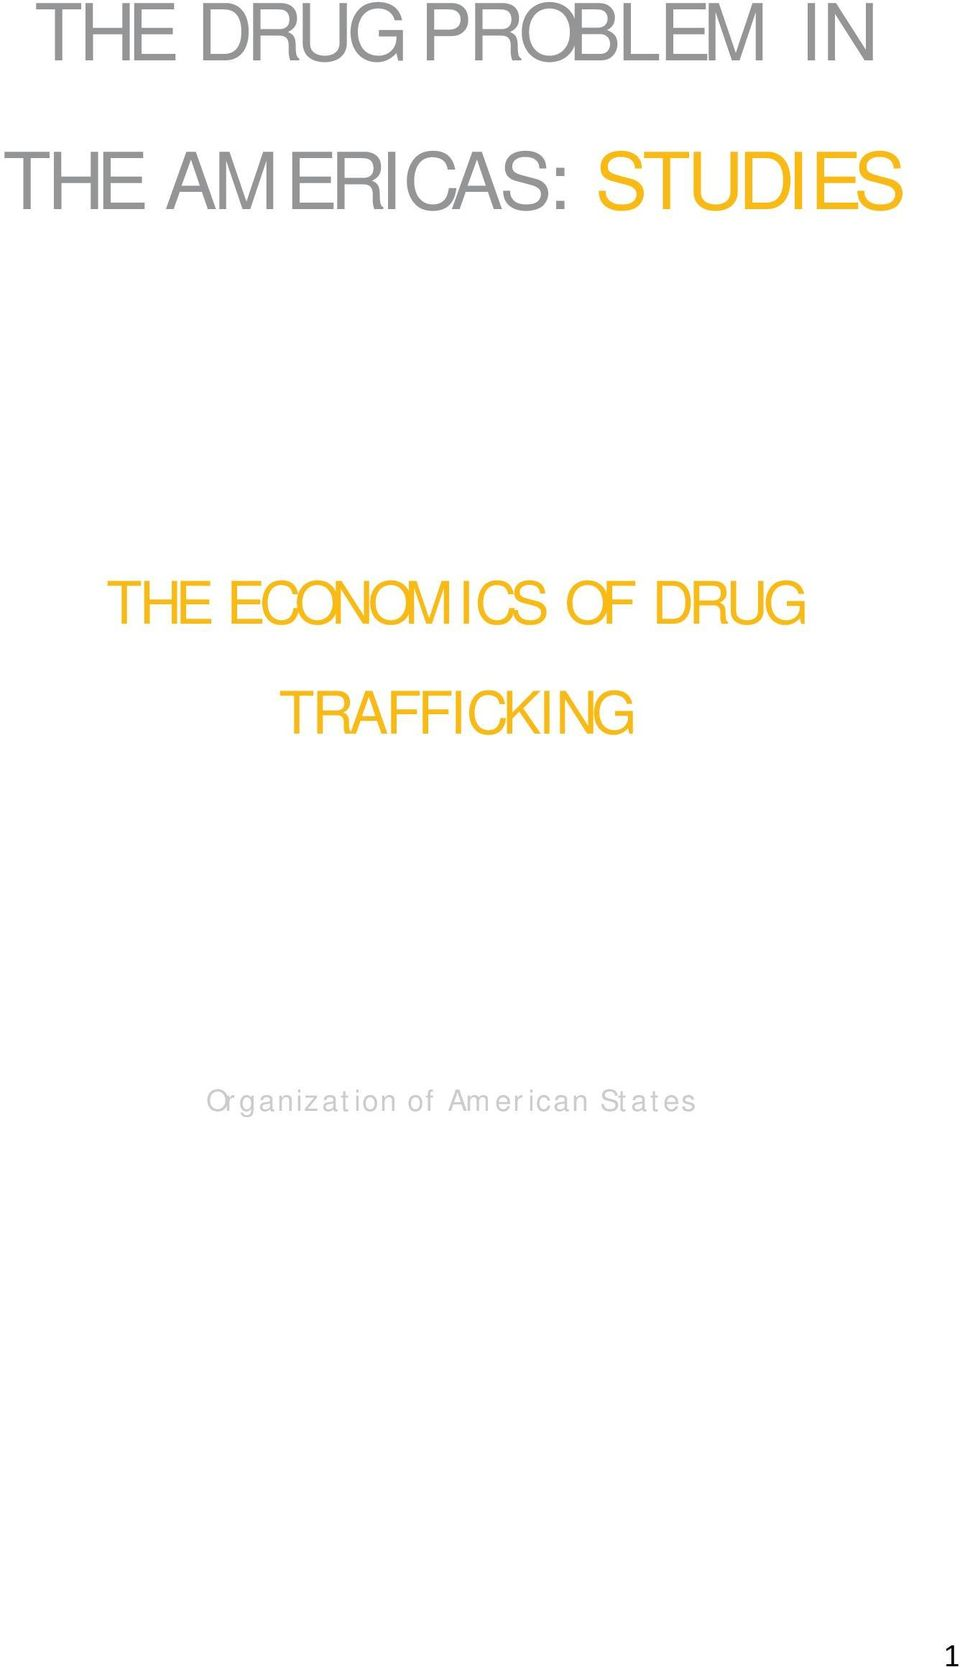 ECONOMICS OF DRUG